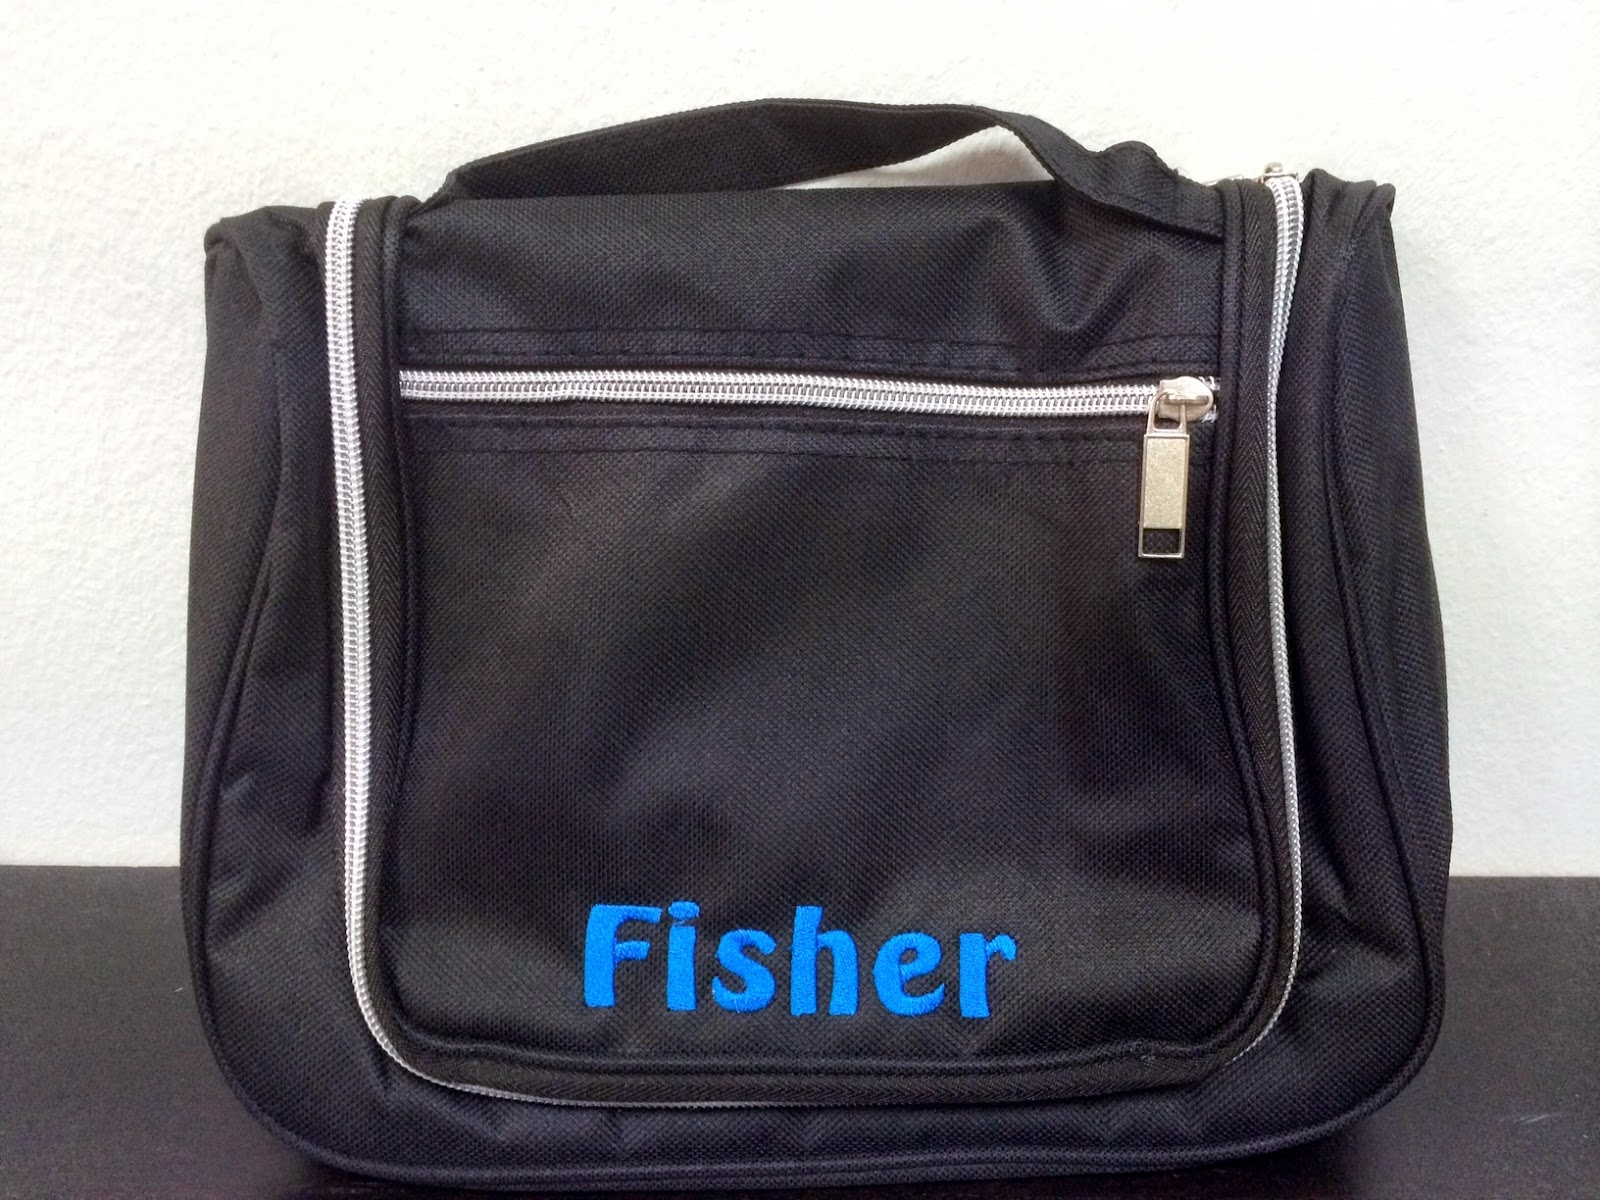 Personalized Toiletry Bag @$34.90 with name